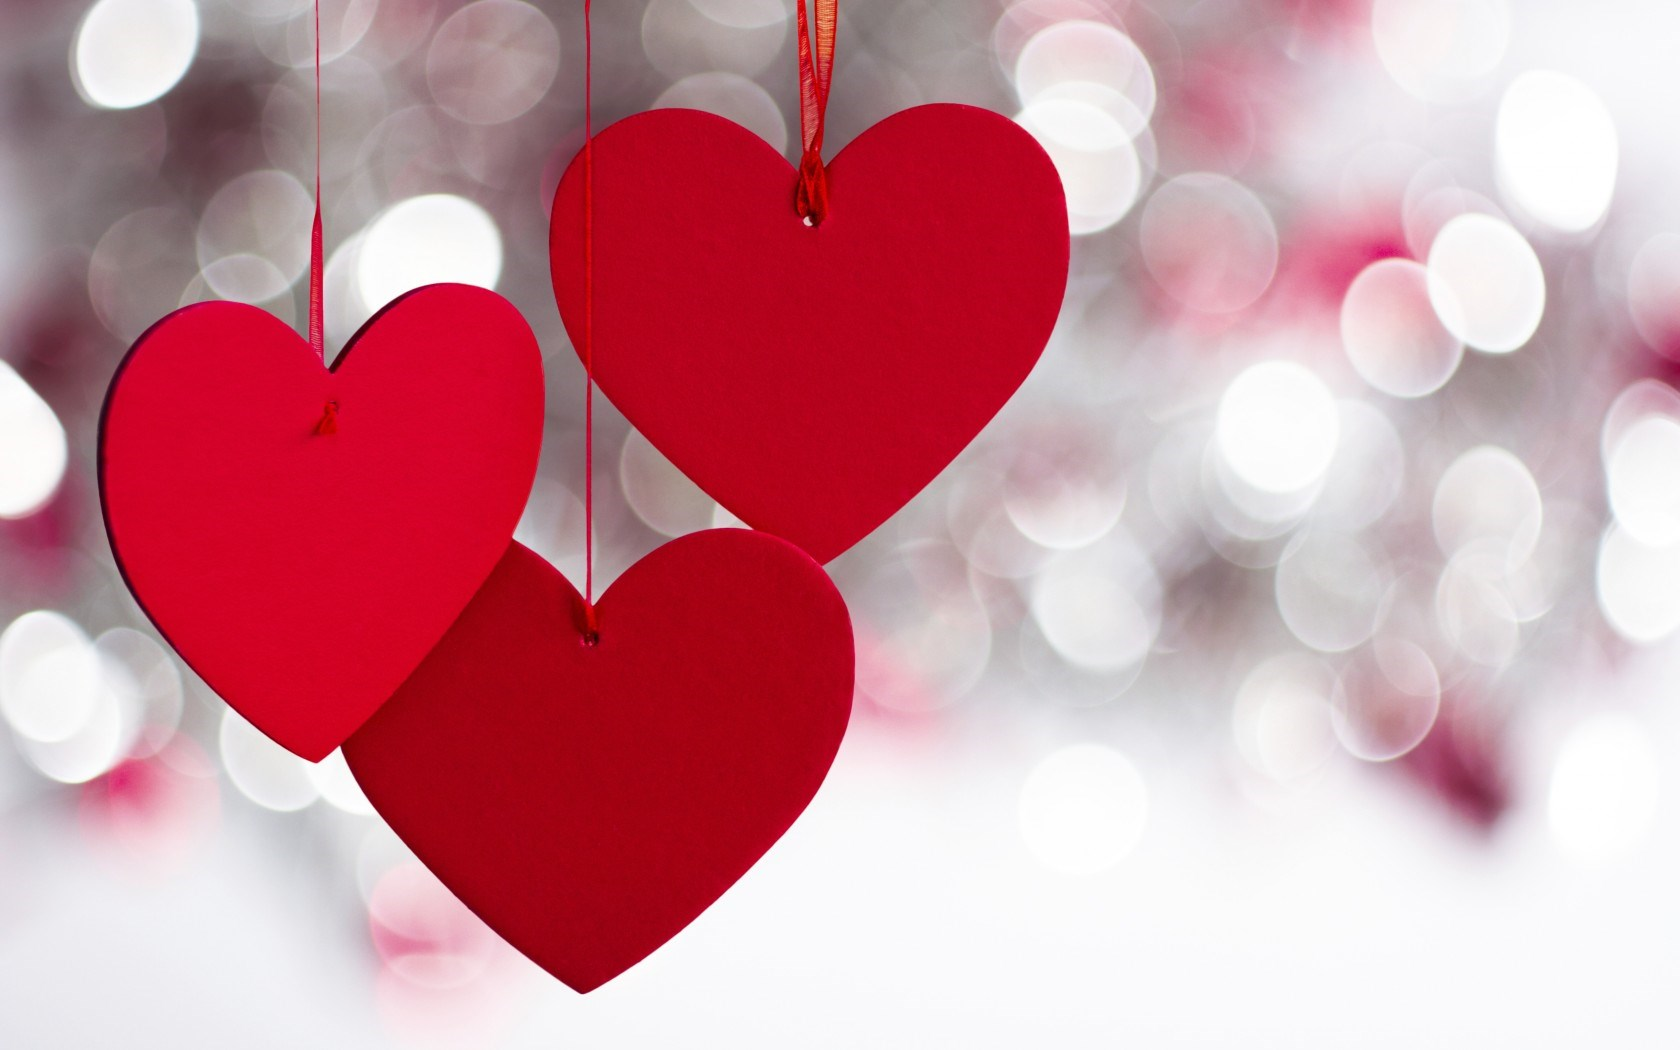 red love hearts wallpaper 50432